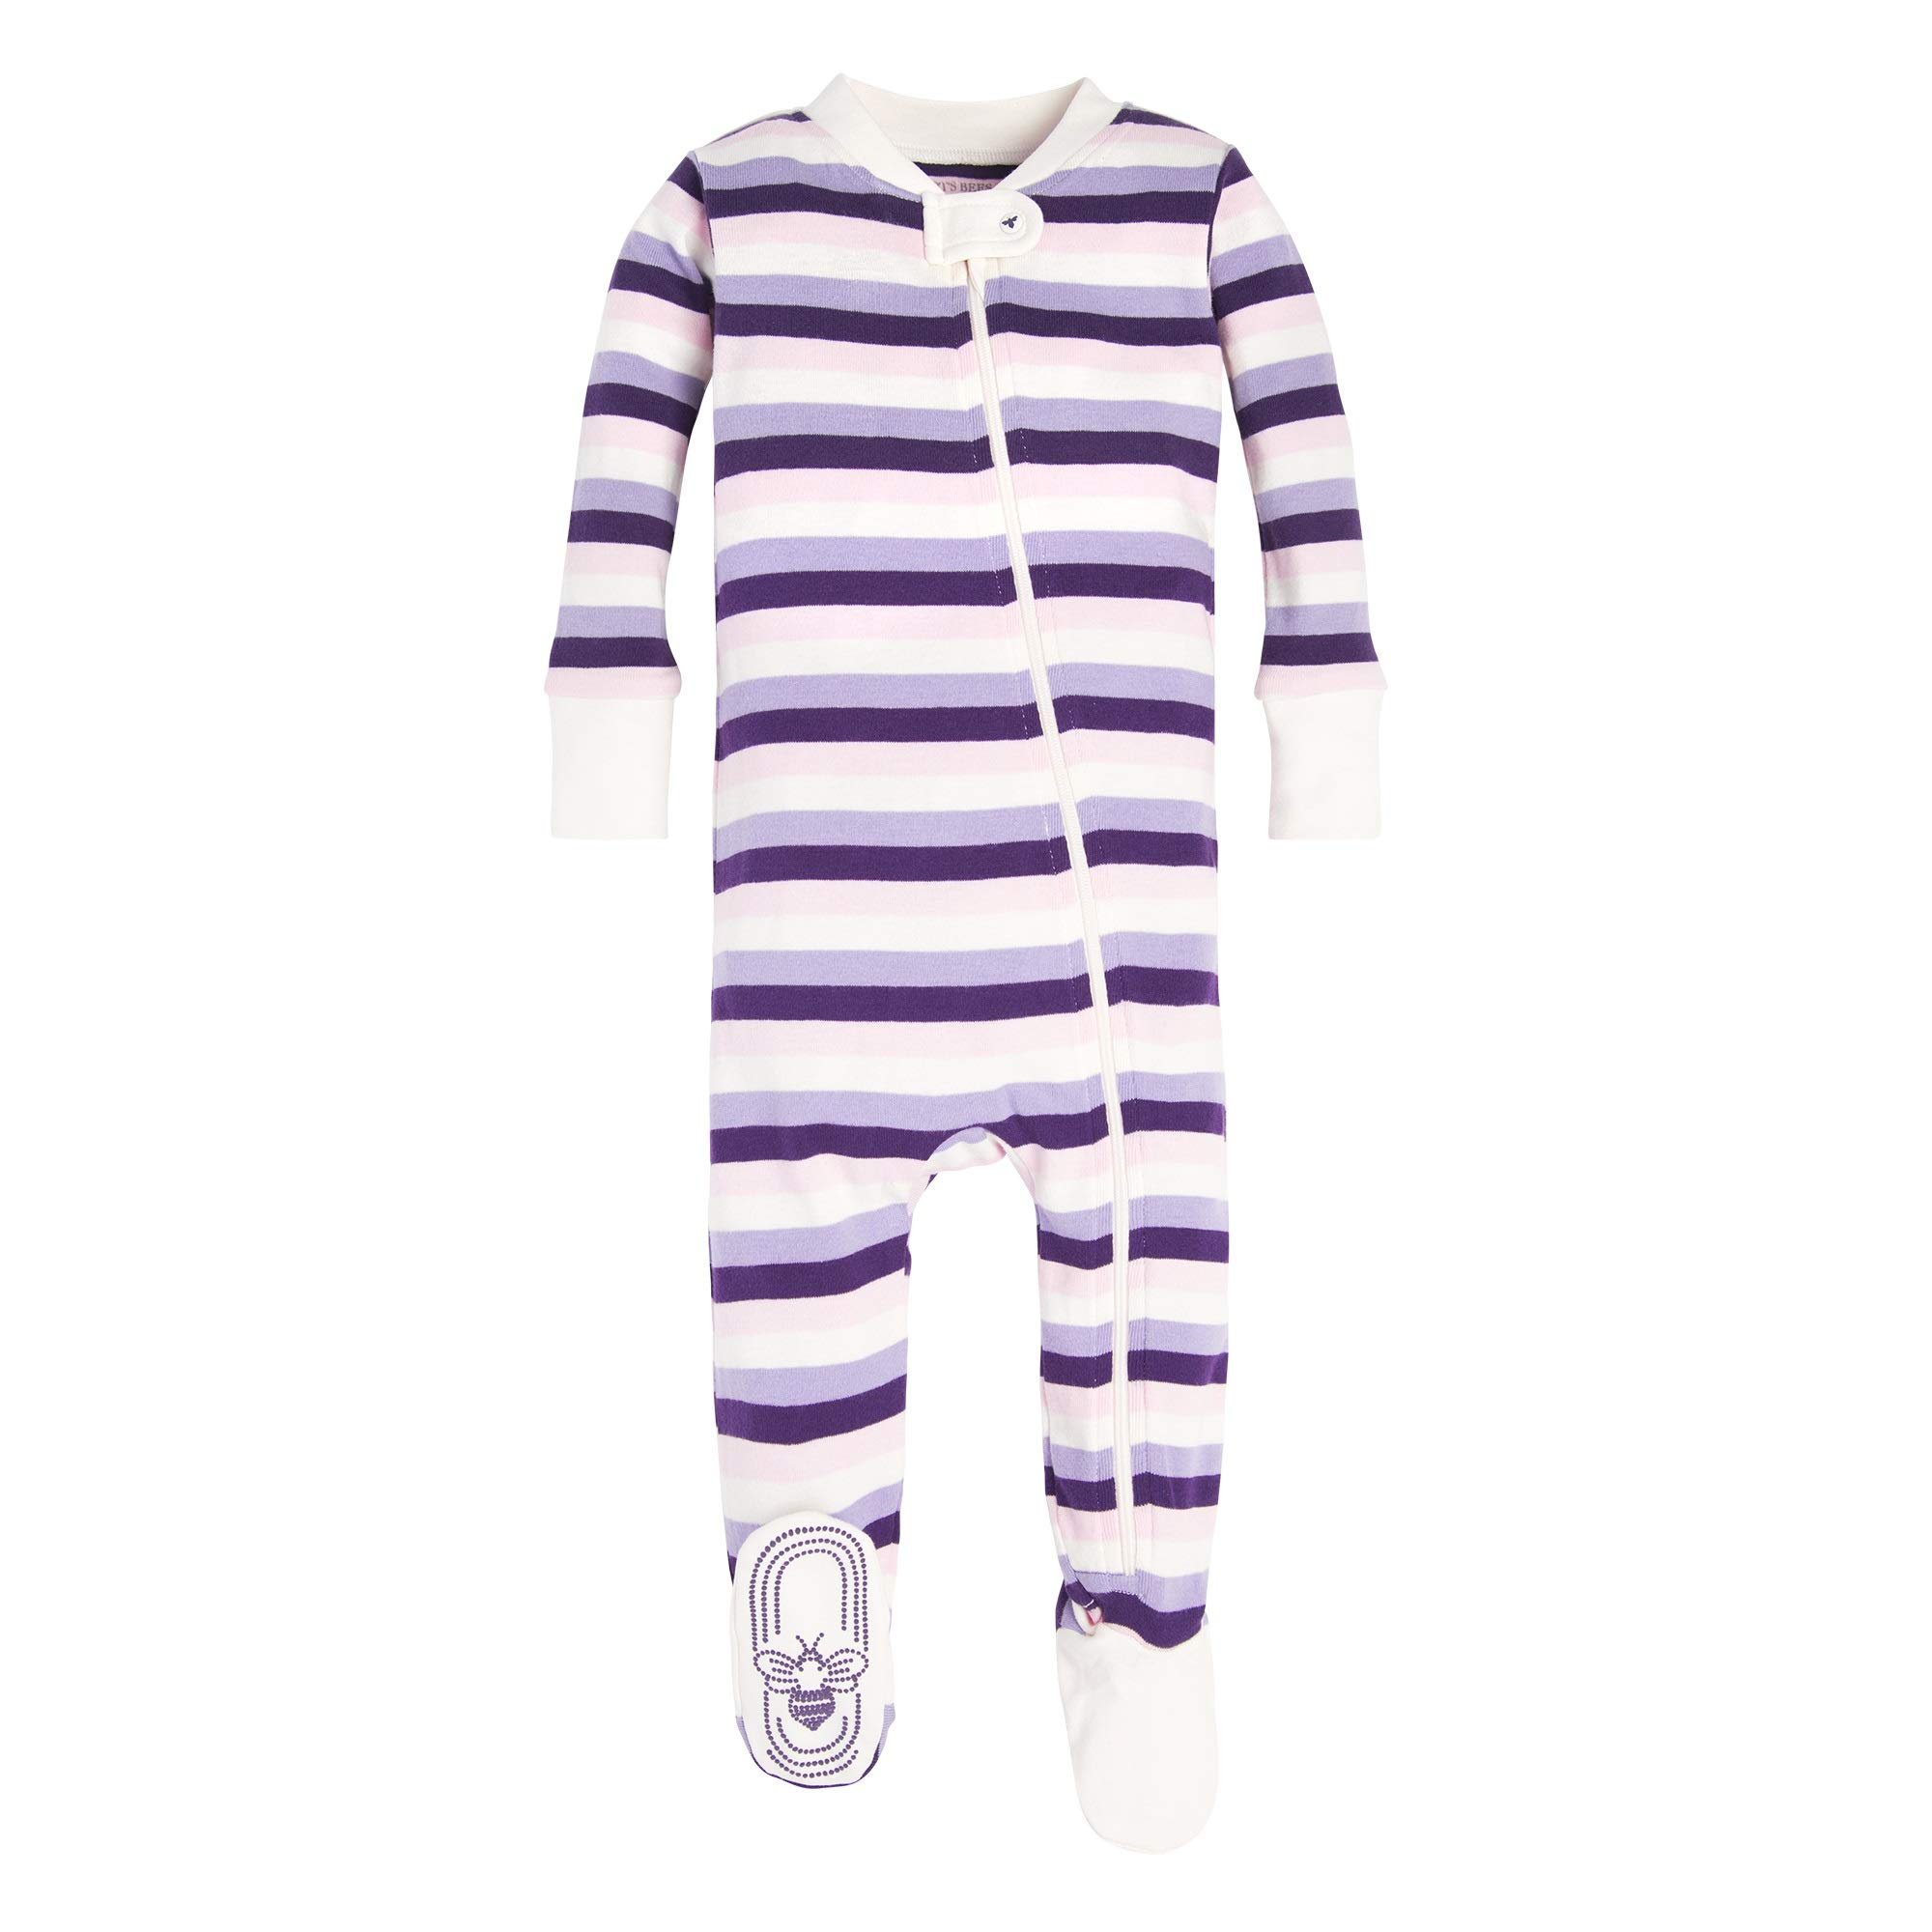 100/% Organic Cotton Burts Bees Baby Zip Front Non-Slip Footed Sleeper PJs Baby Girls Sleeper Pajamas